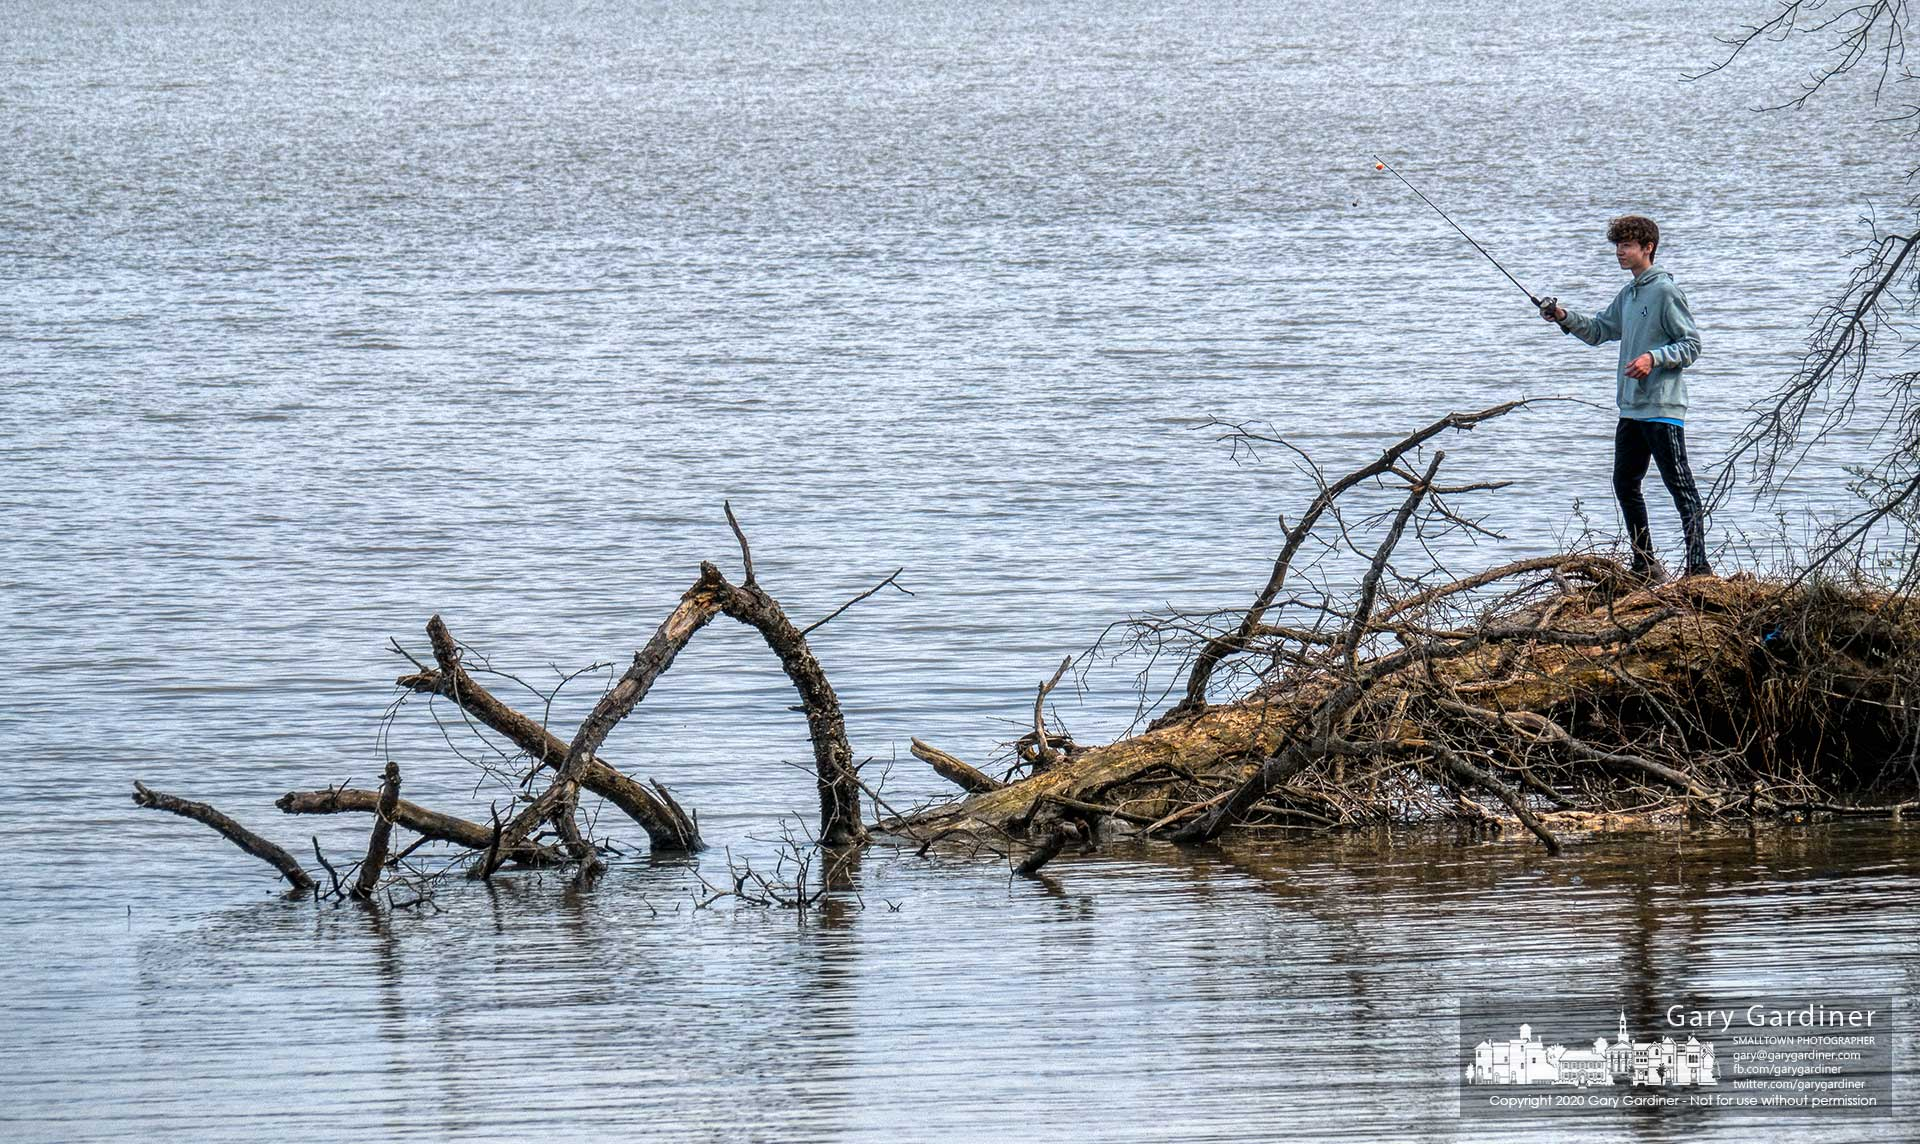 A young angler tries his luck casting along the length of a fallen tree at the edge of Hoover Reservoir. My Final Photo for April 19, 2020.